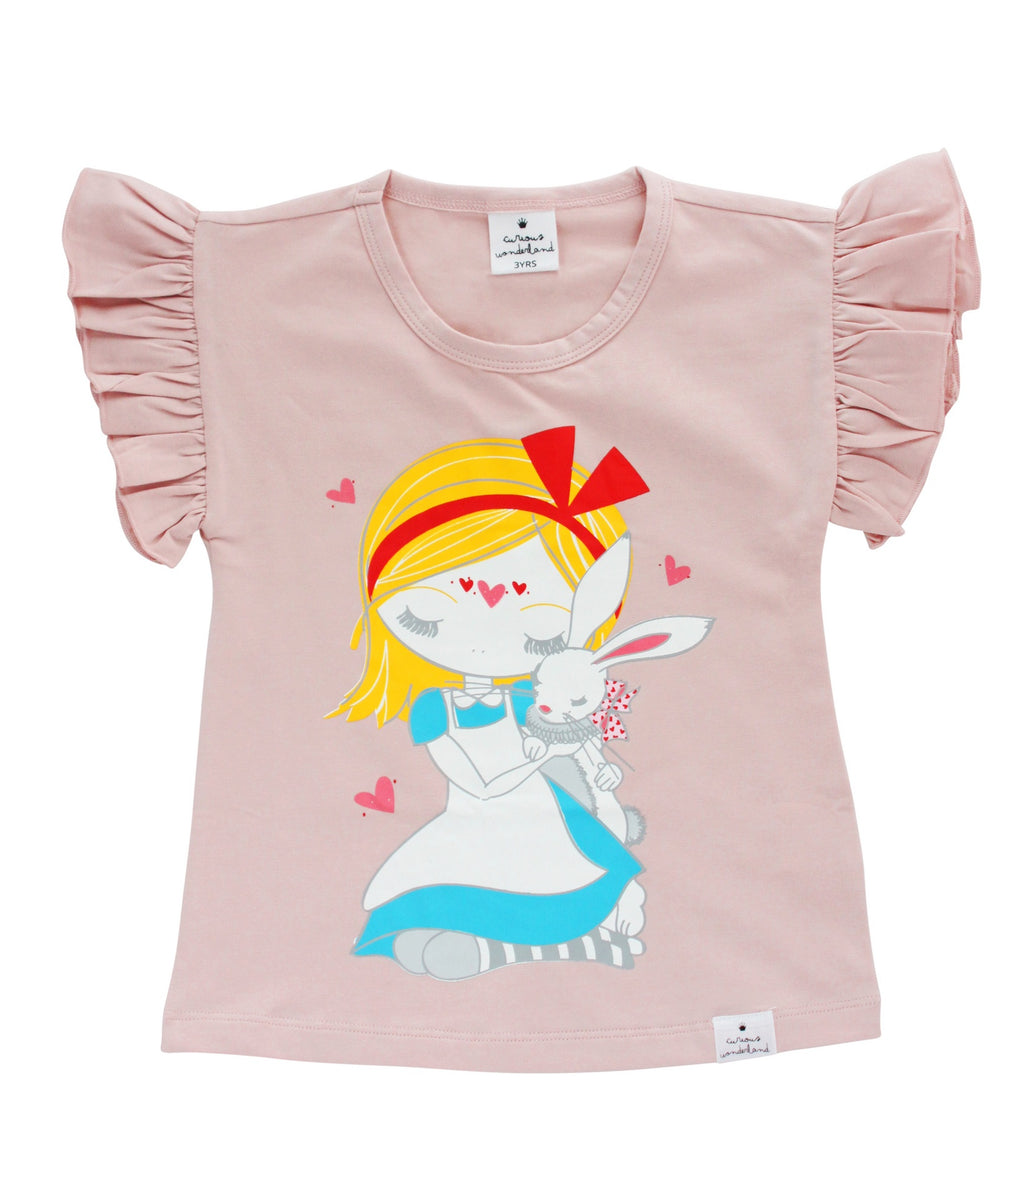 Curious Wonderland Best friends flutter T Shirt - Little Entourage Children's Boutique